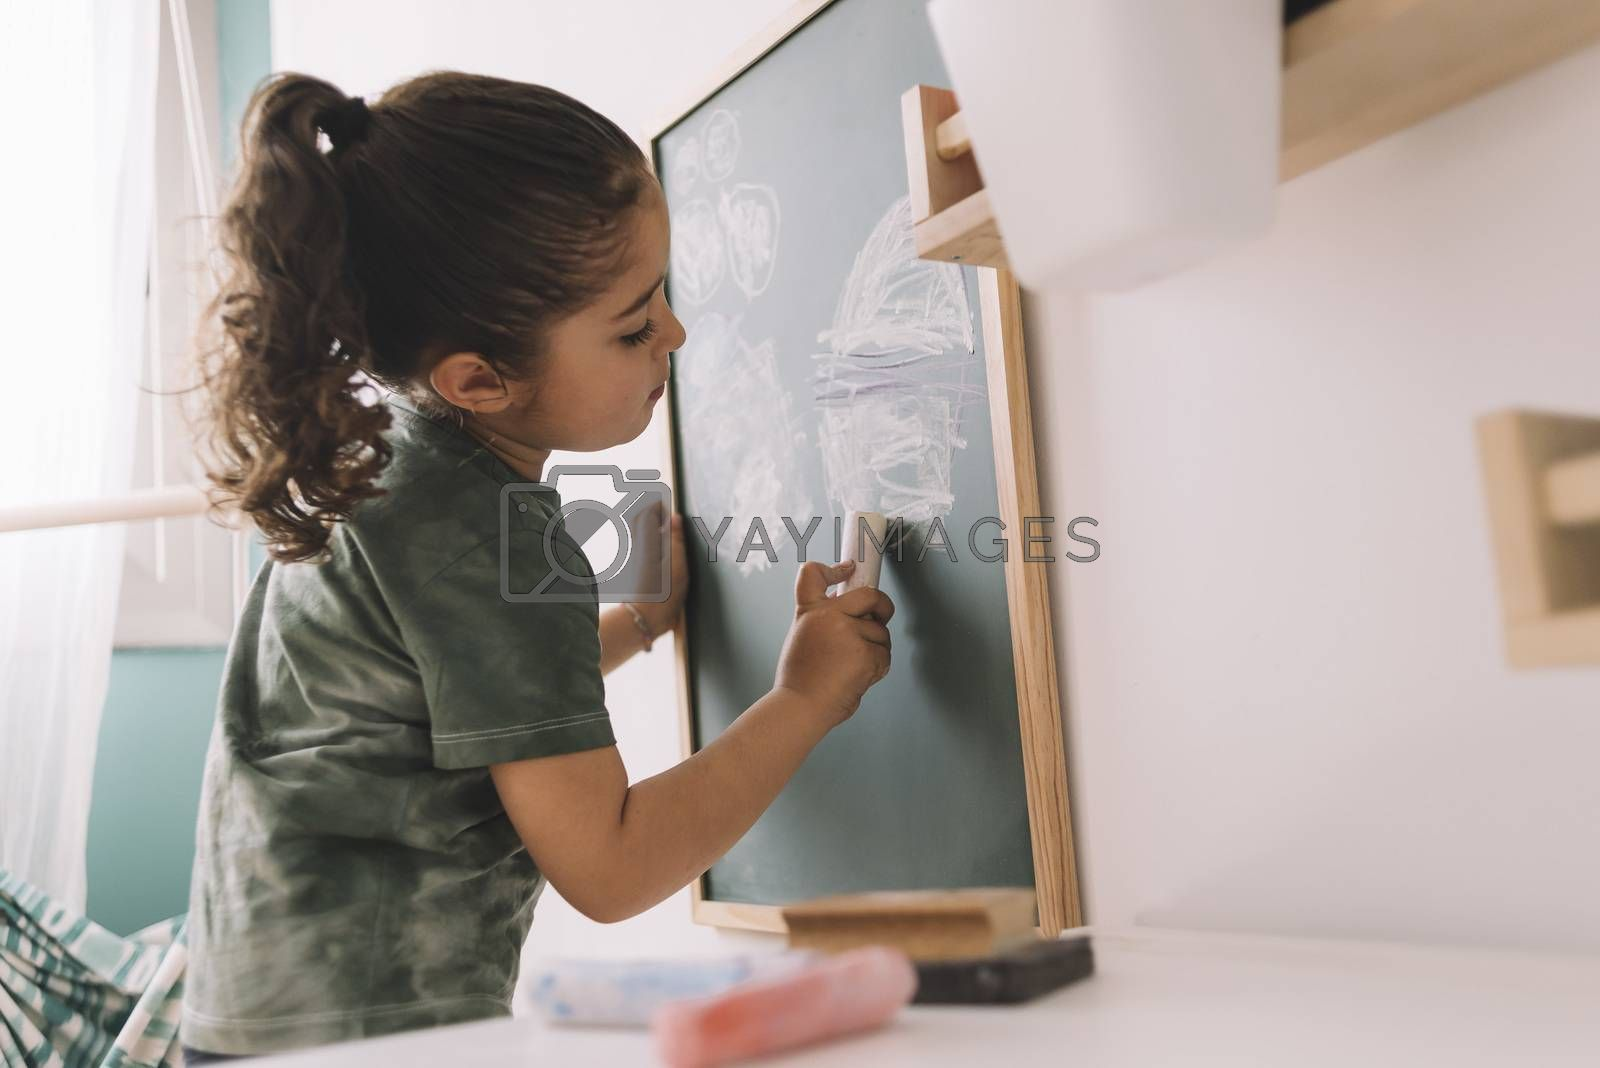 little girl drawing on a chalkboard at her room by raulmellado